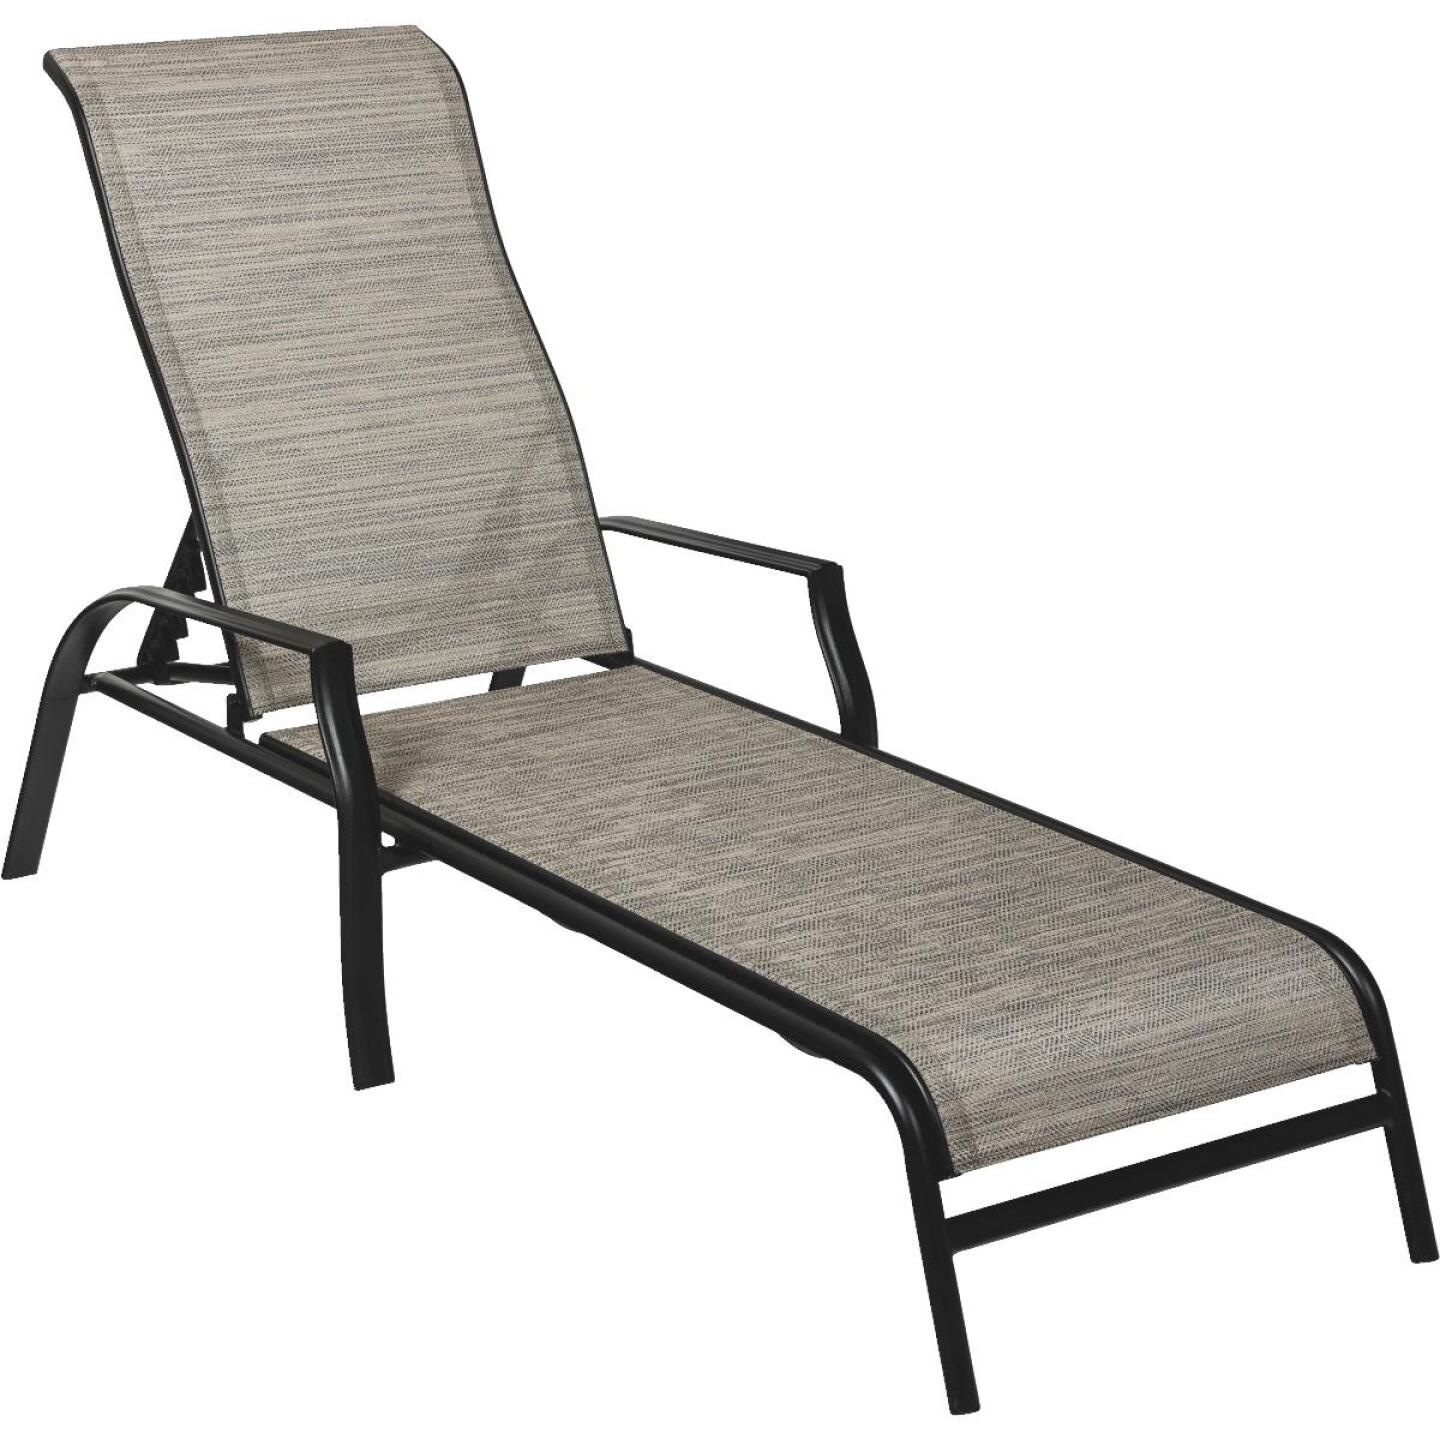 Outdoor Expressions Galveston Chaise Lounge Image 1